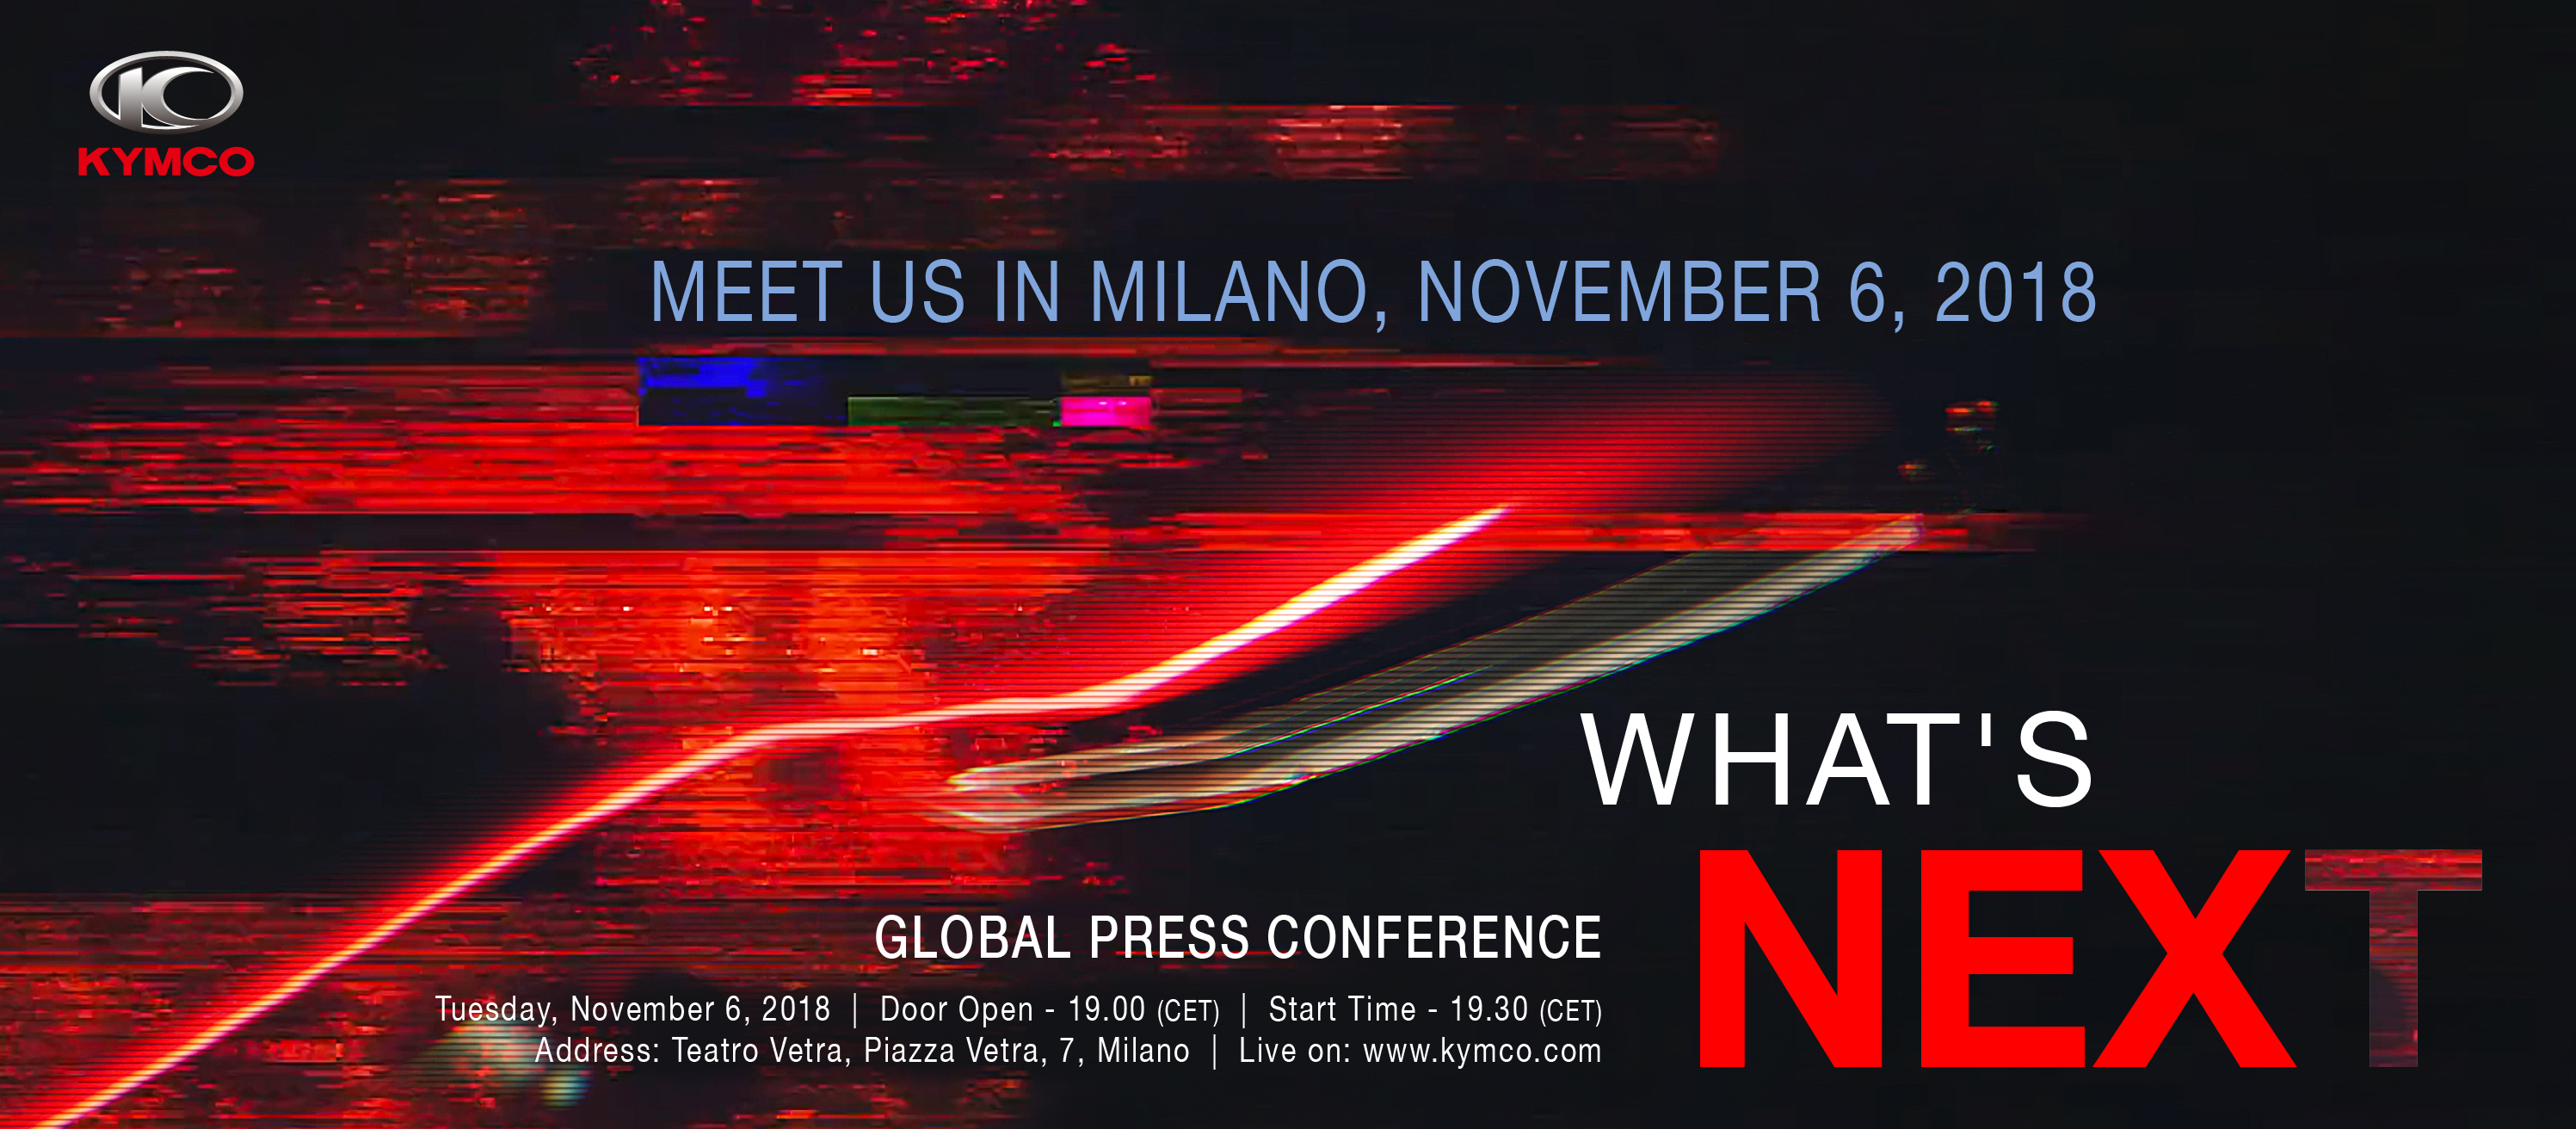 KYMCO Global Press Conference at Teatro Vetra, Milano|EICMA 2018